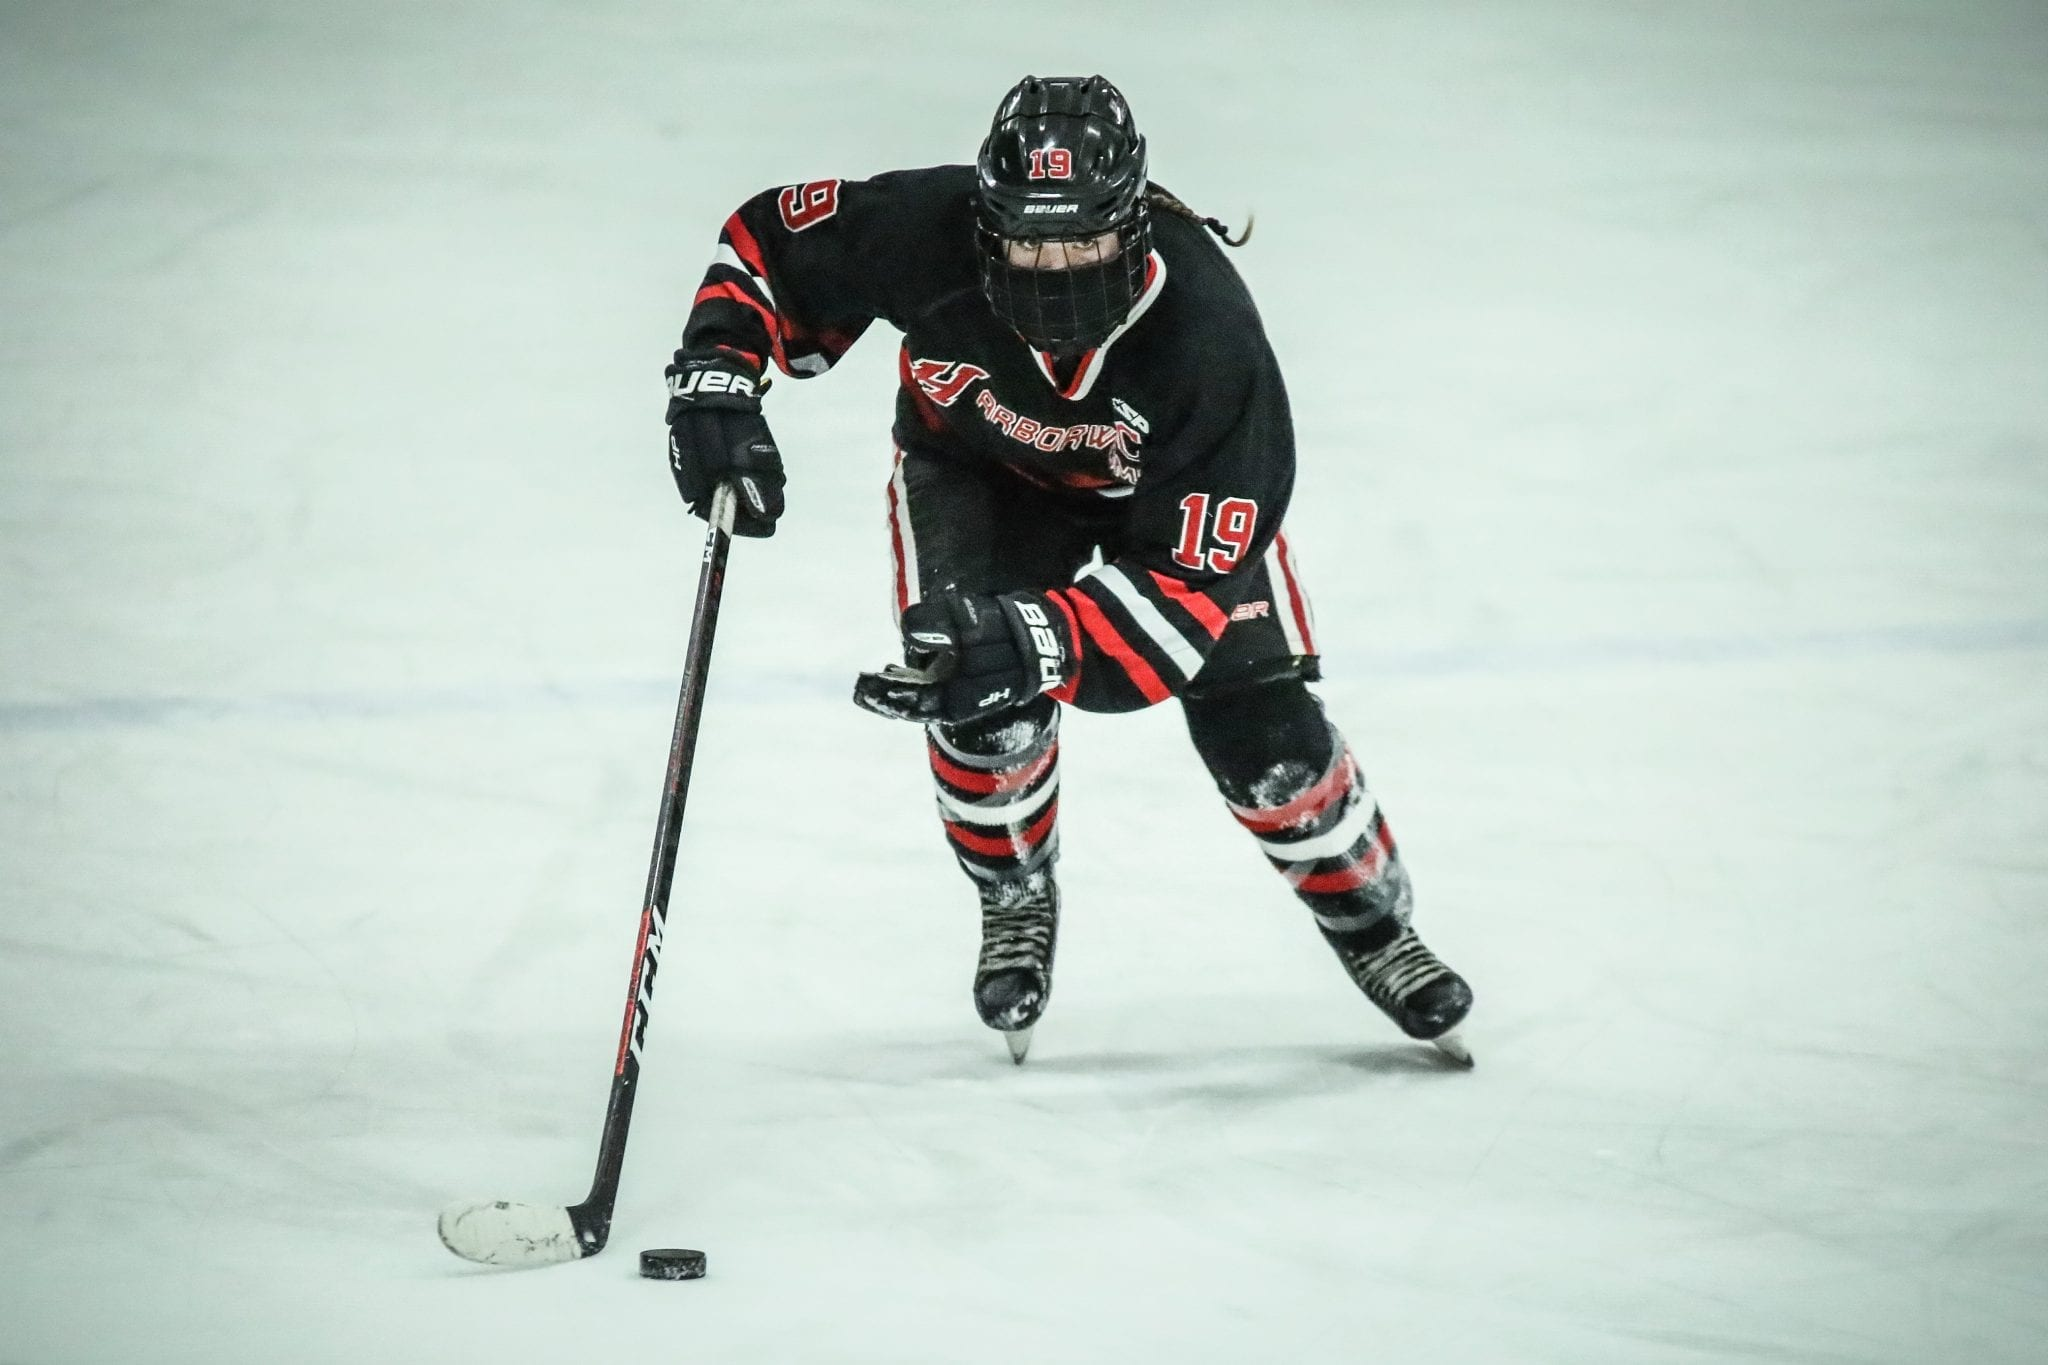 Junior captain Kathryn Karo skates up the ice during the second period of Hingham's 3-2 OT loss to Pembroke.